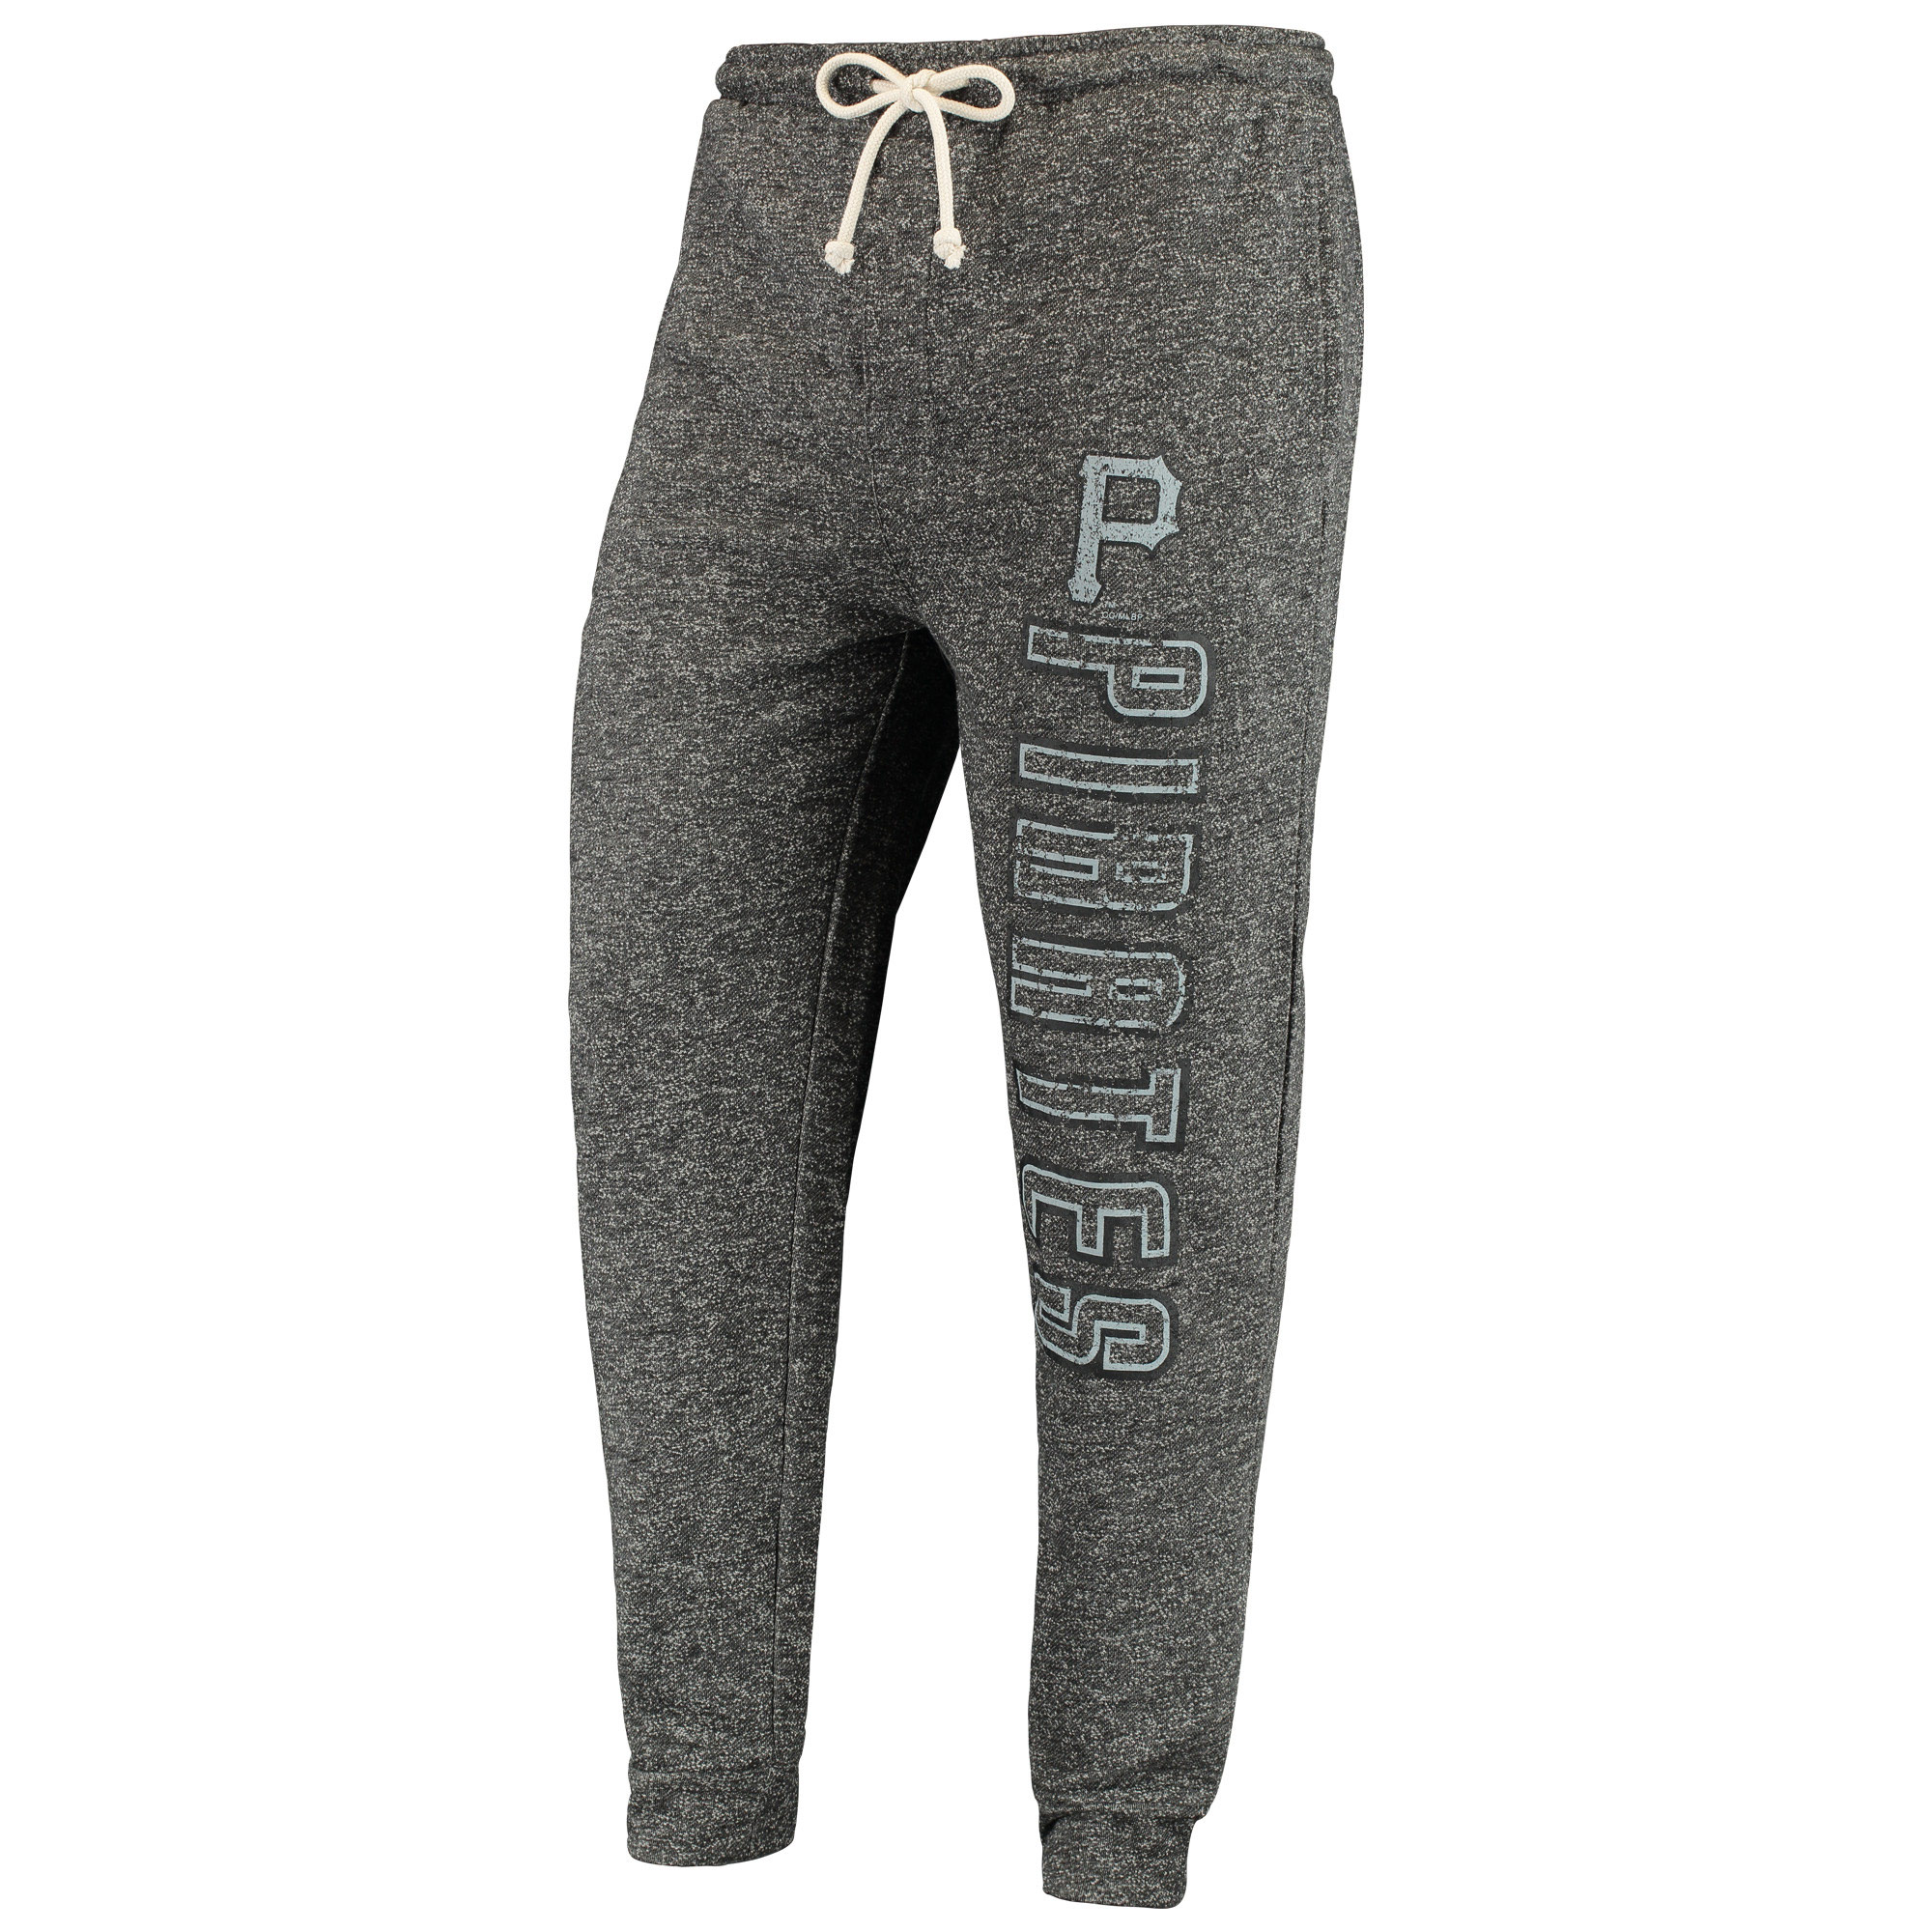 Pittsburgh Pirates Concepts Sport Pinpoint French Terry Cuffed Pant - Charcoal